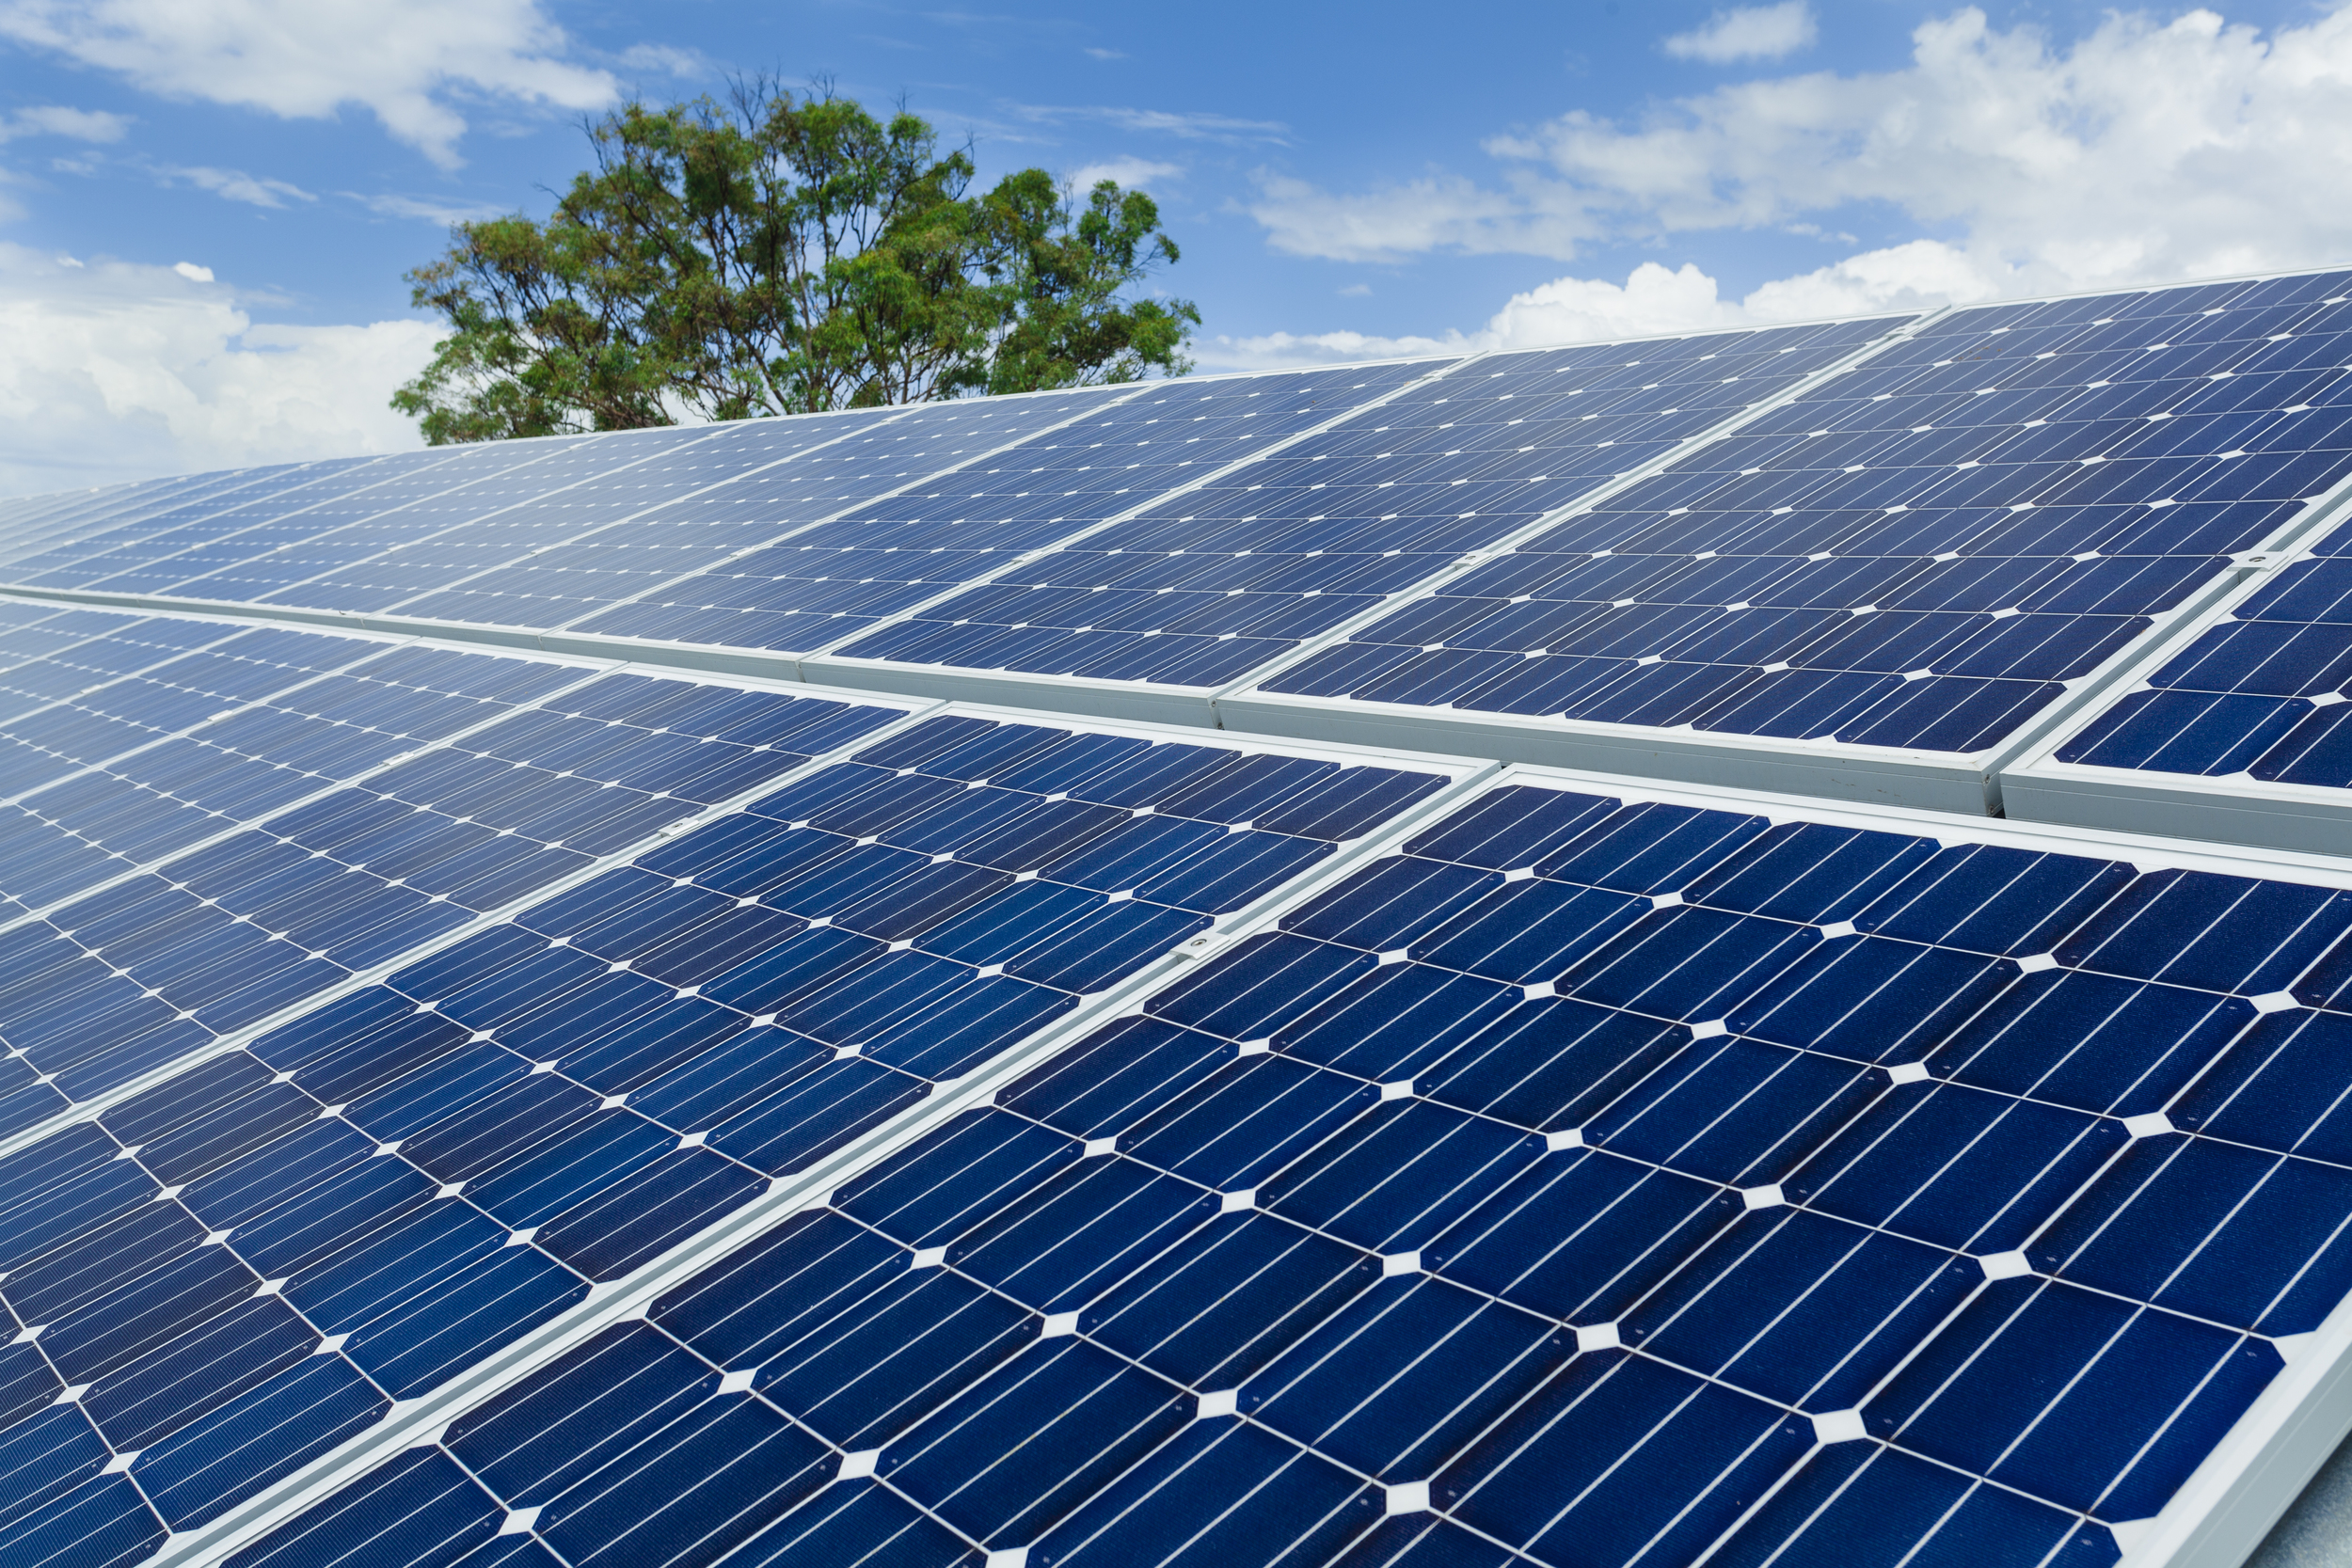 Greener Future for Aluroll - Solar Panels on Factory Roof